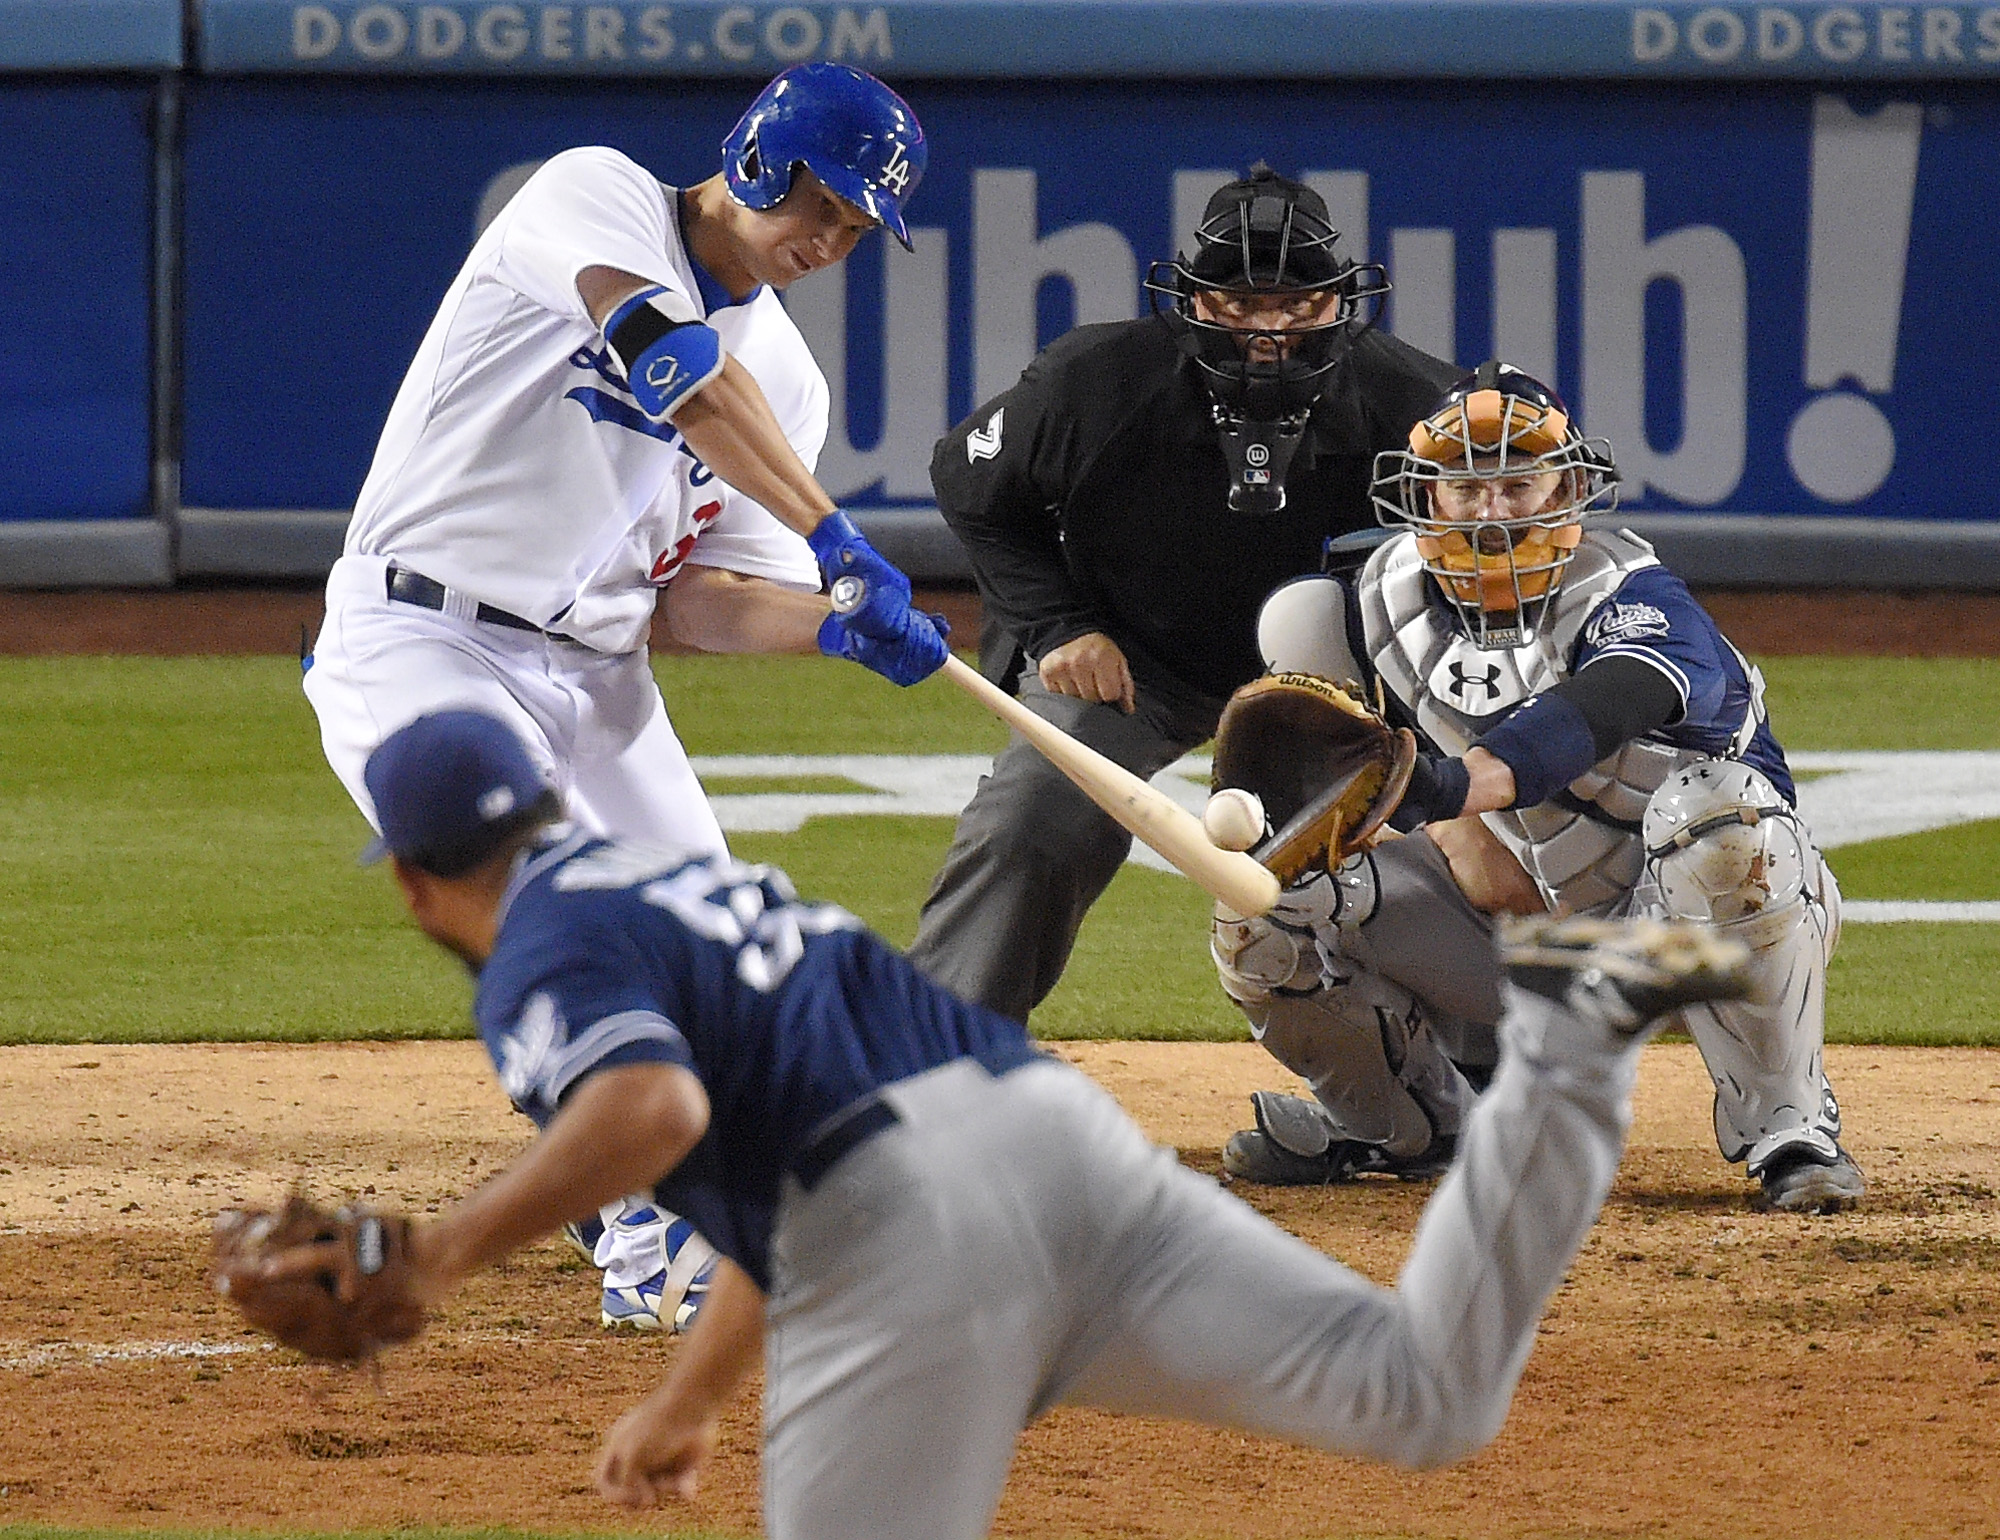 Los Angeles Dodgers' Joc Pederson, left, hits a solo home run off San Diego Padres relief pitcher Joaquin Benoit, in front of Padres catcher Derek Norris and home plate umpire Brian O'Nora during the eighth inning of a baseball game, Friday, May 22, 2015,